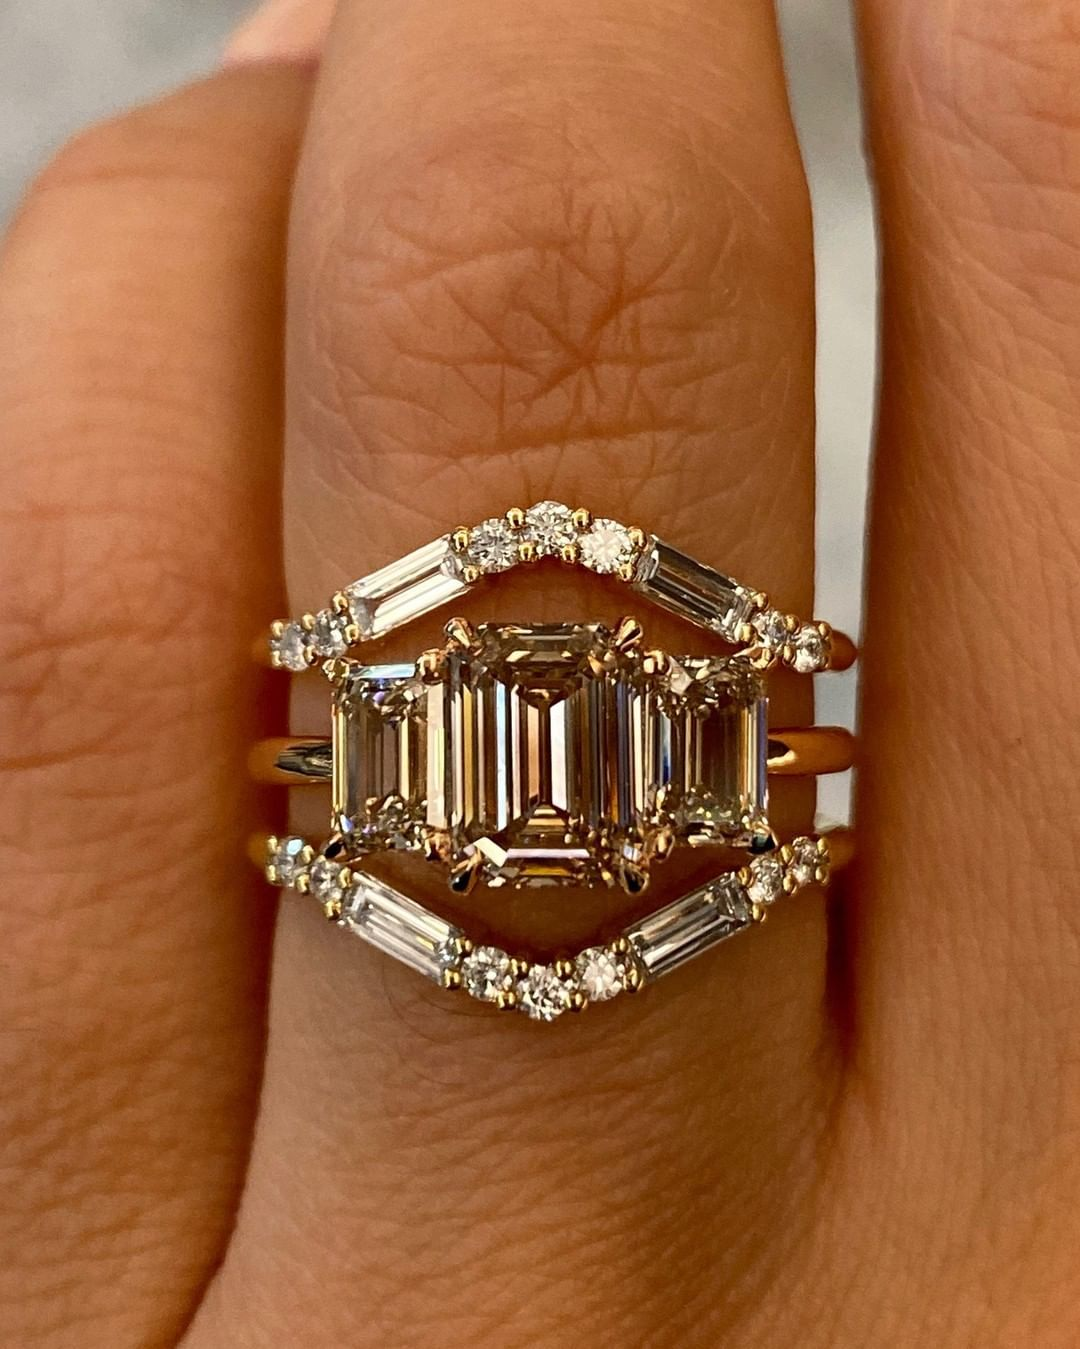 2020 Fashion Rings For Women Designer Rings Tati Westbrook Engagement Ring Diamond Band Q'S Jewellery Simple Silver Anklets